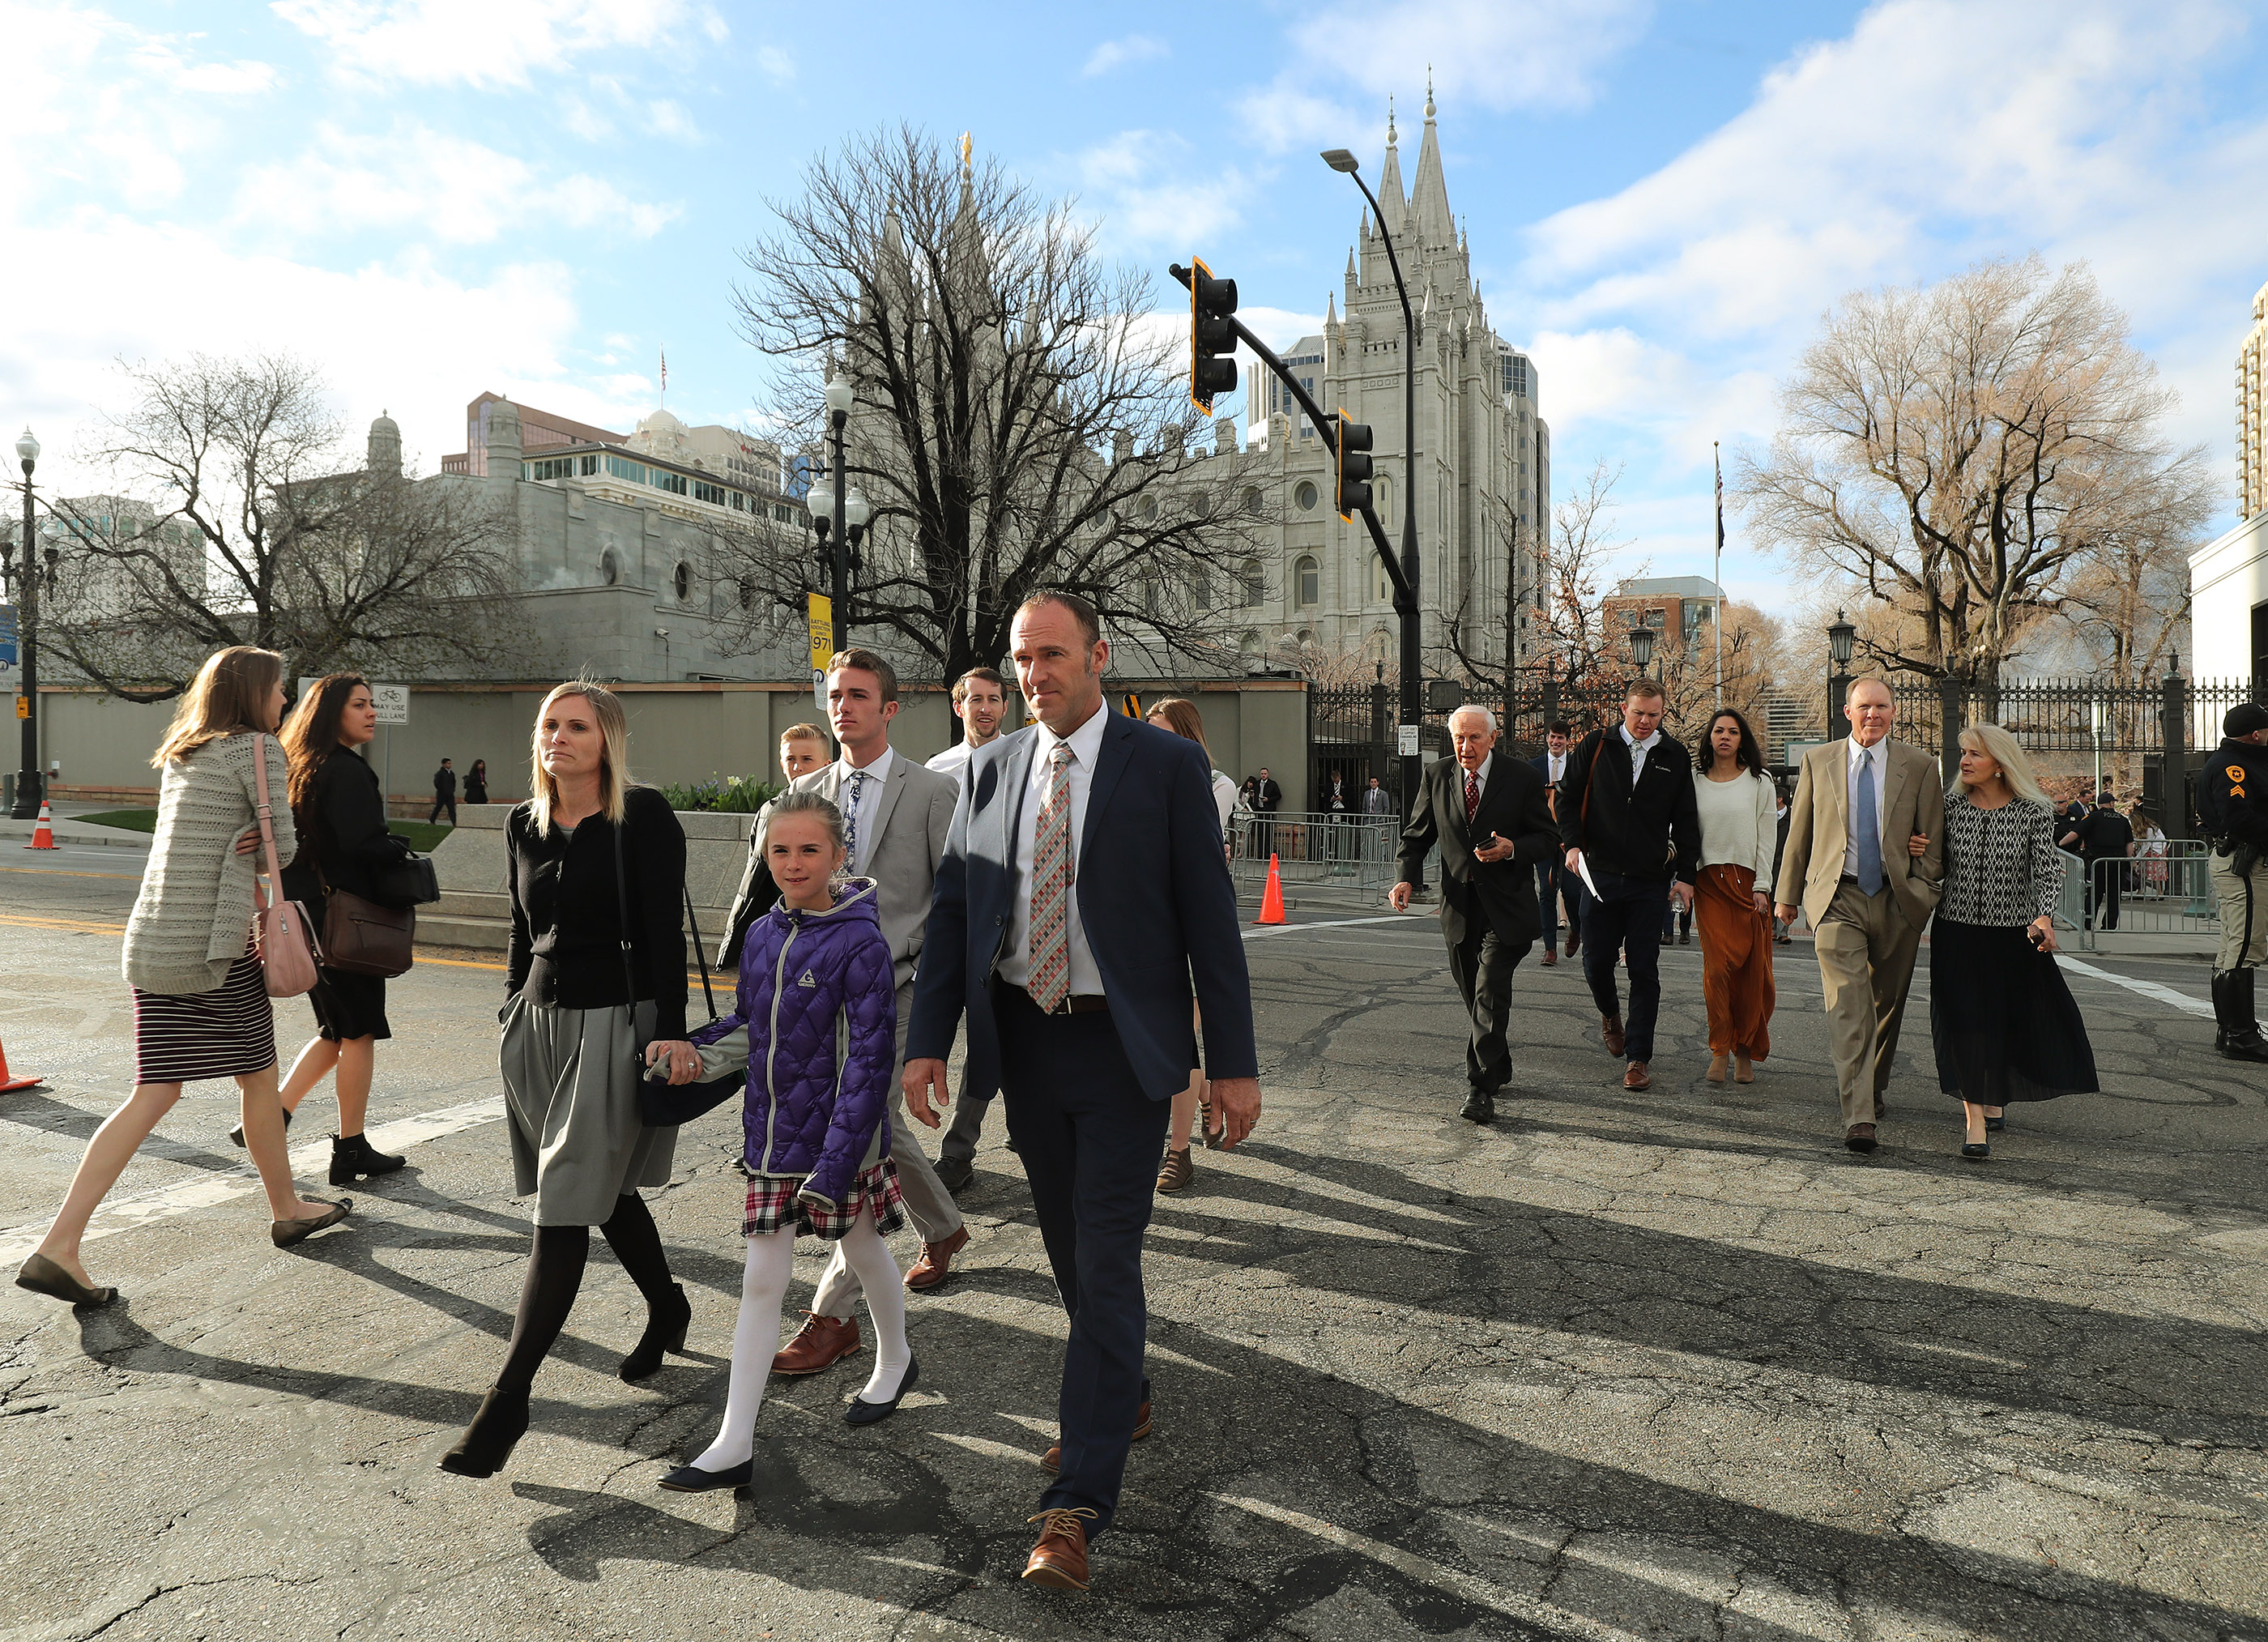 Conferencegoers arrive at the Conference Center prior to the 189th Annual General Conference of The Church of Jesus Christ of Latter-day Saints in Salt Lake City on Saturday, April 6, 2019.